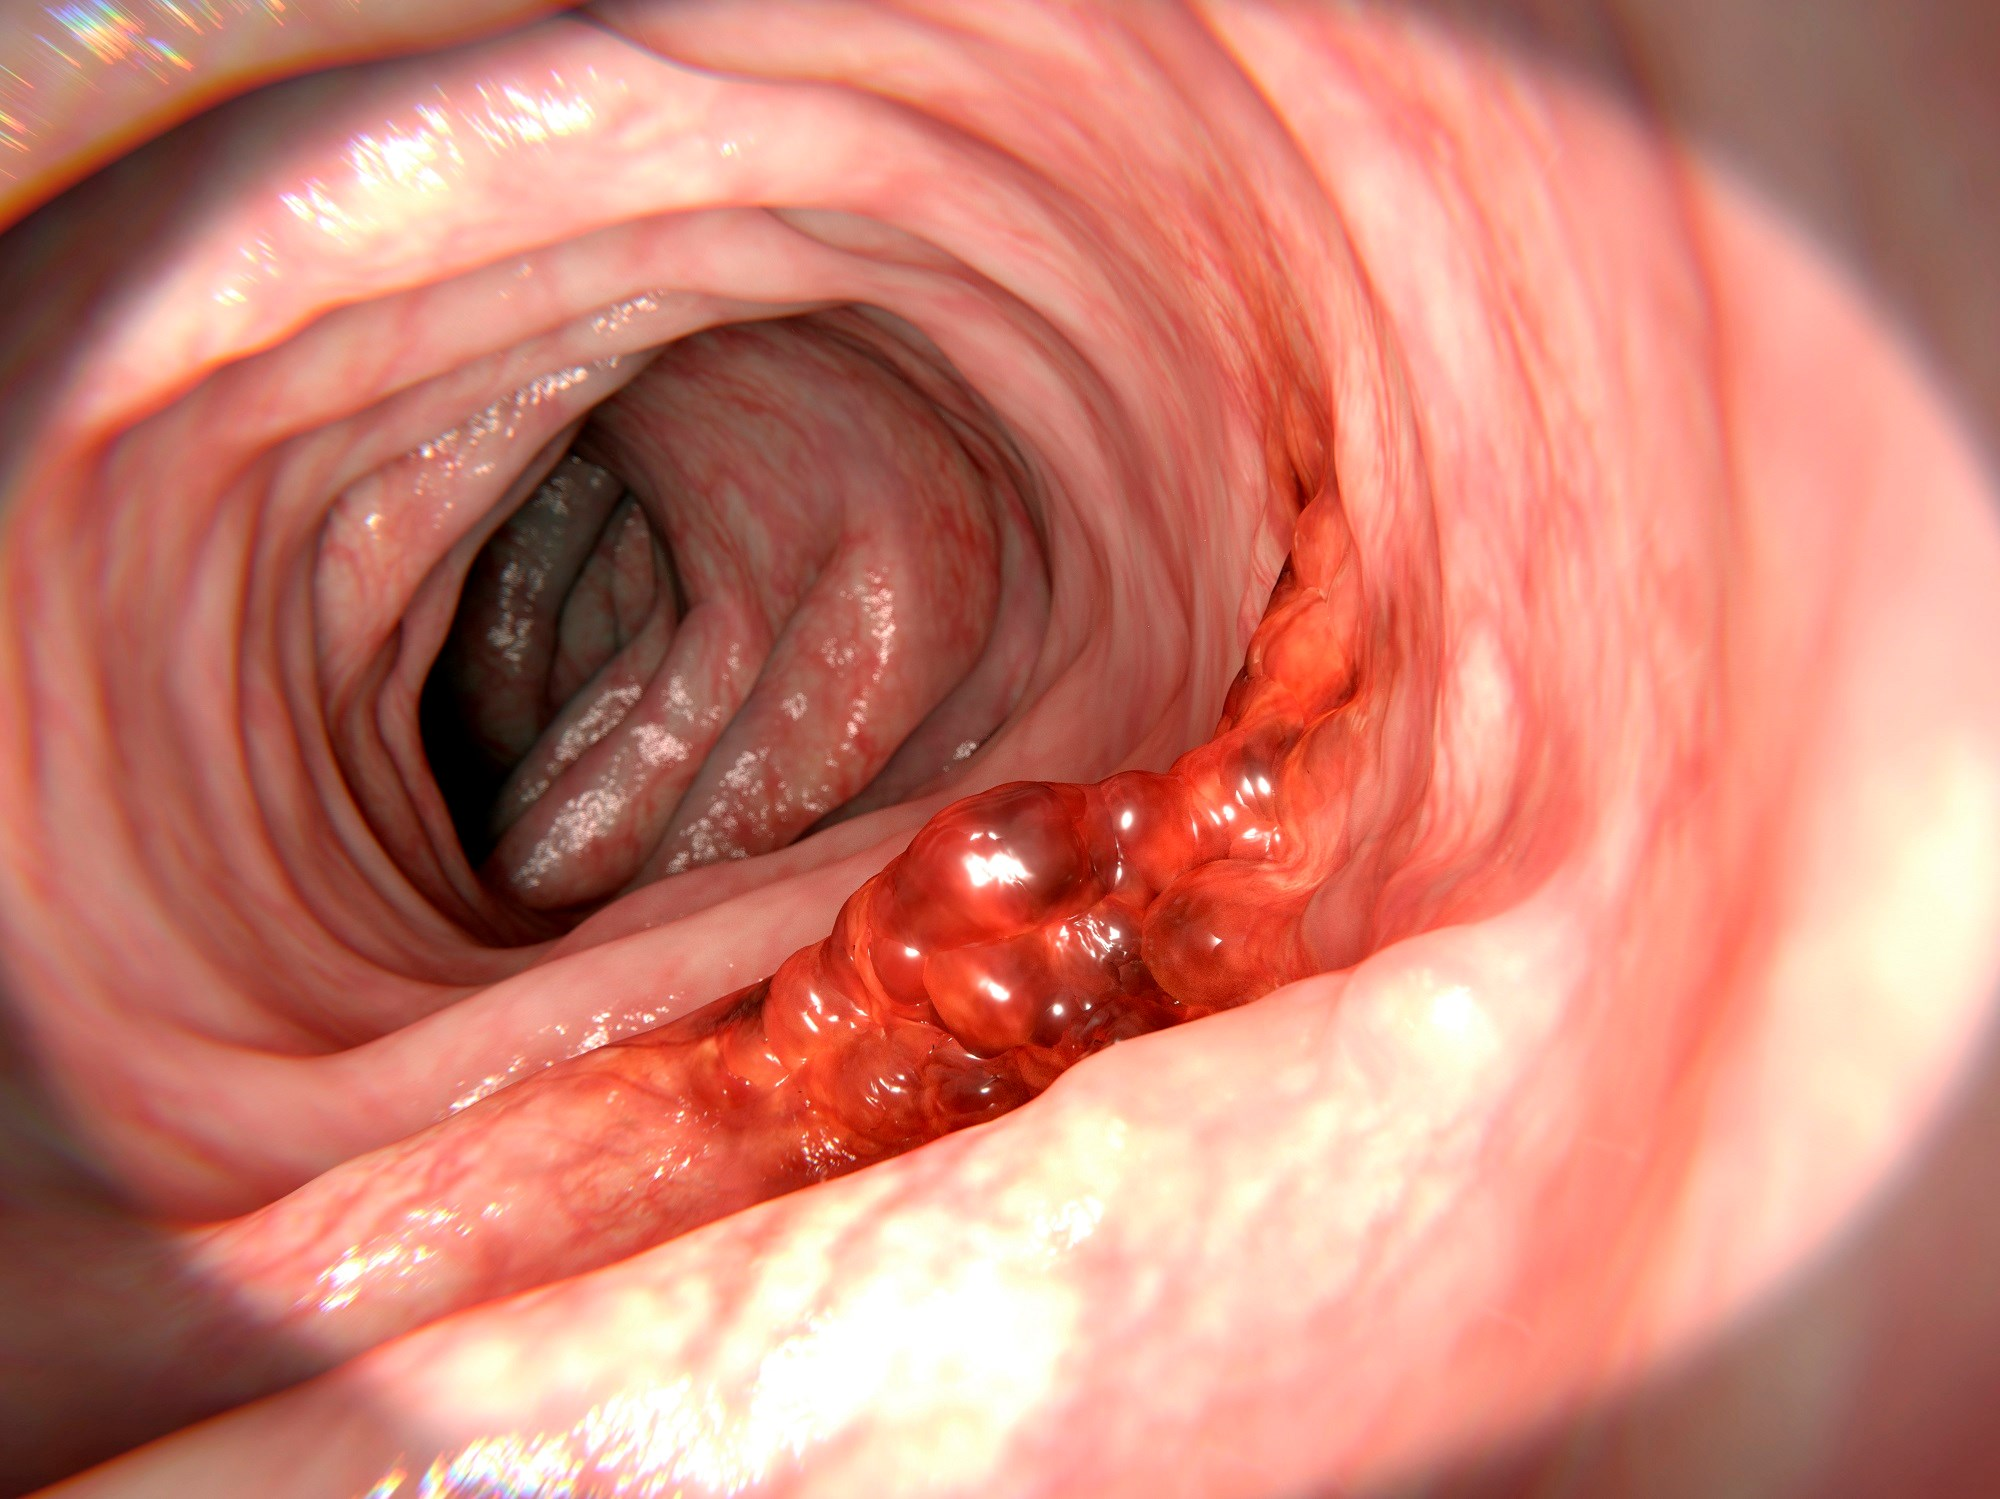 Patients With Gout Have Lower Prevalence of Colorectal Cancer